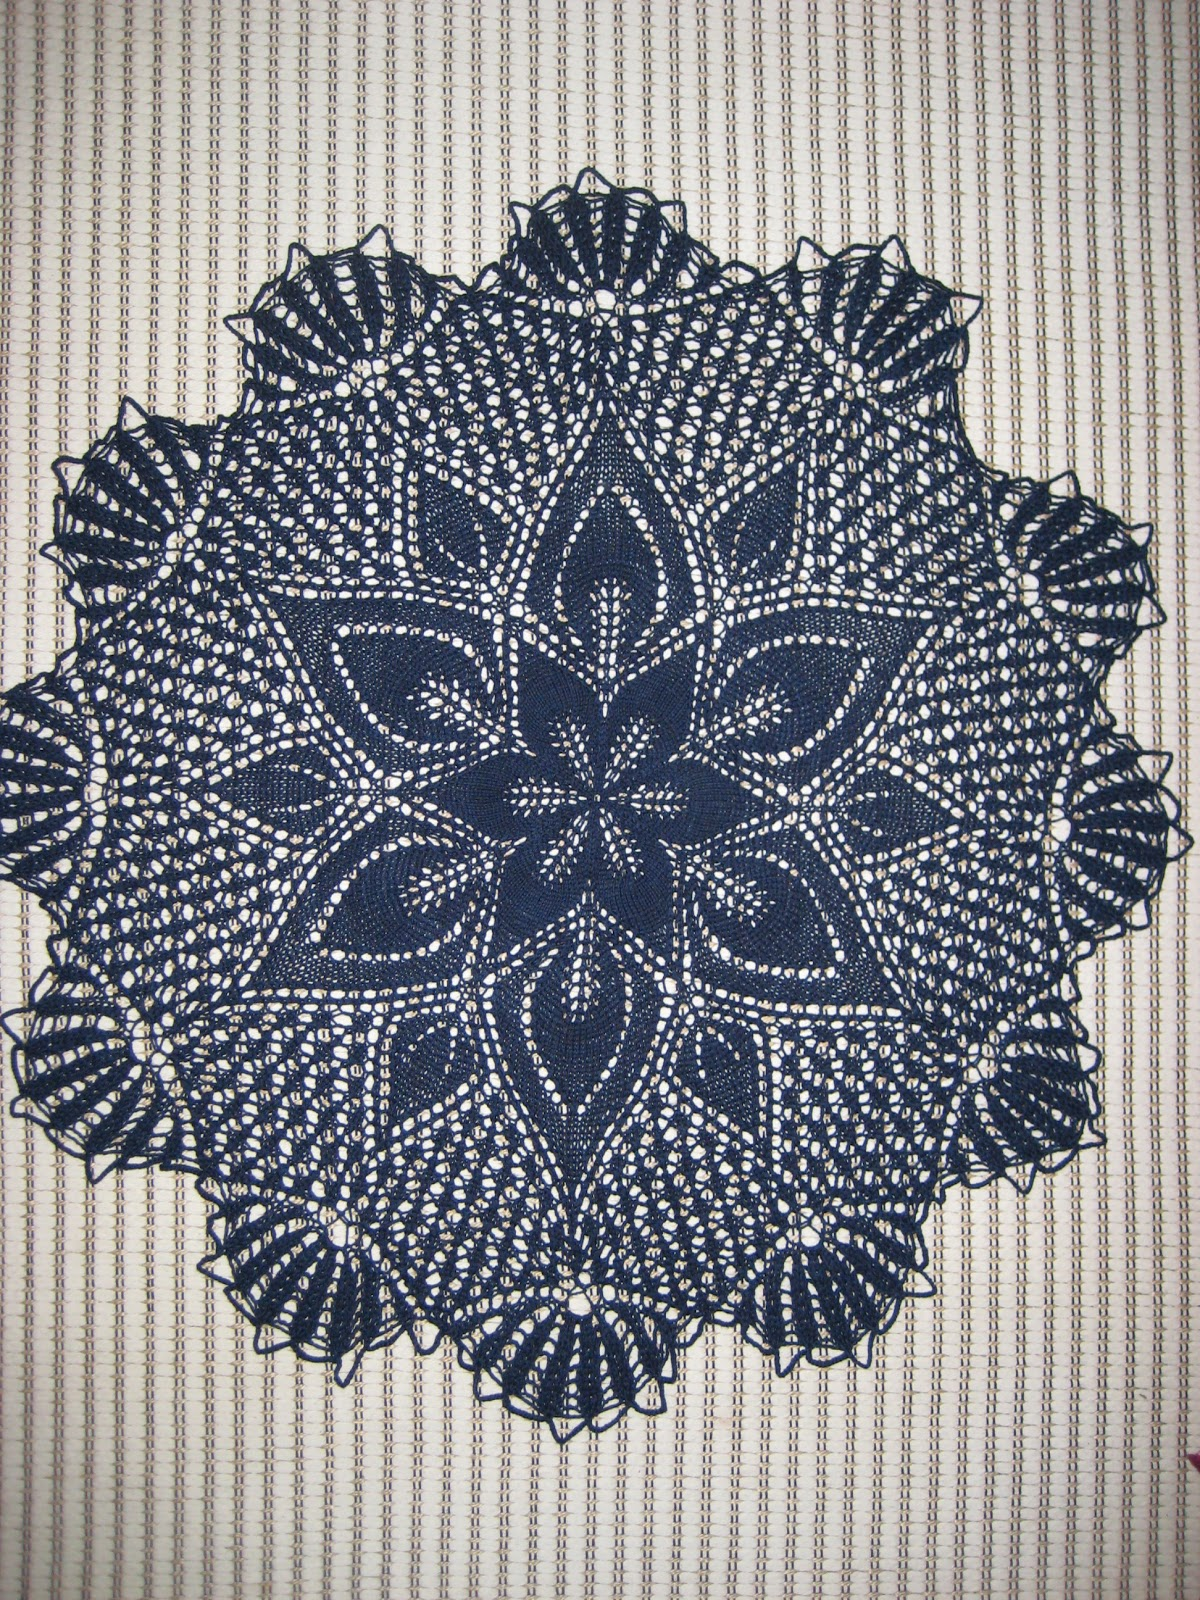 Knitted Tablecloth Patterns : Sweet n Pretty Things: More knitted lace tablecloth goodness